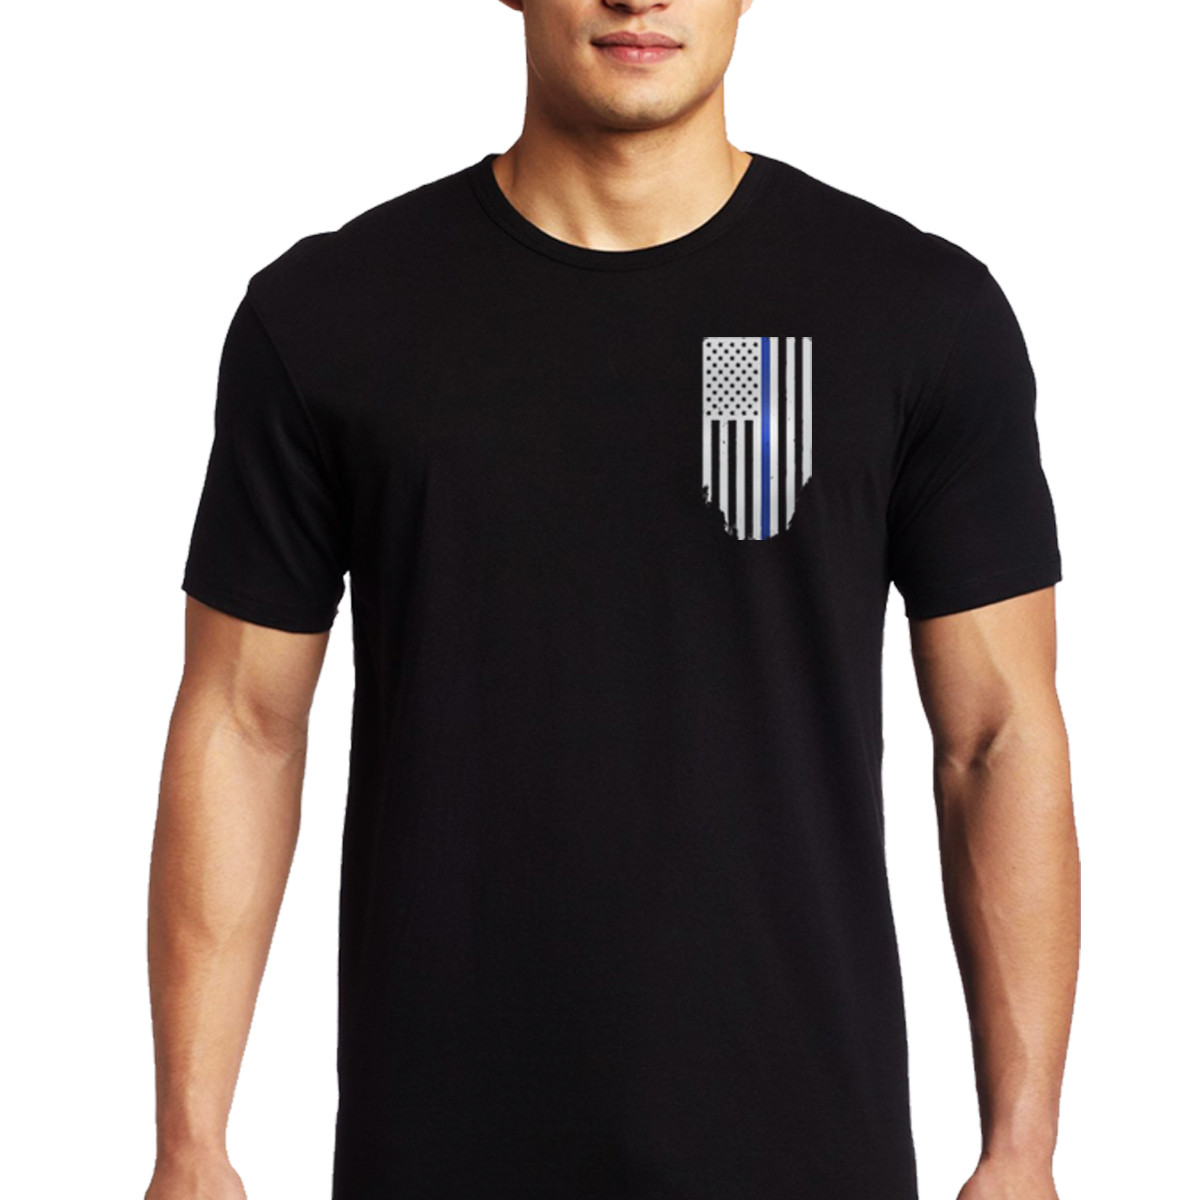 Thin blue line men 39 s black flag t shirt ebay Shirts for thin guys